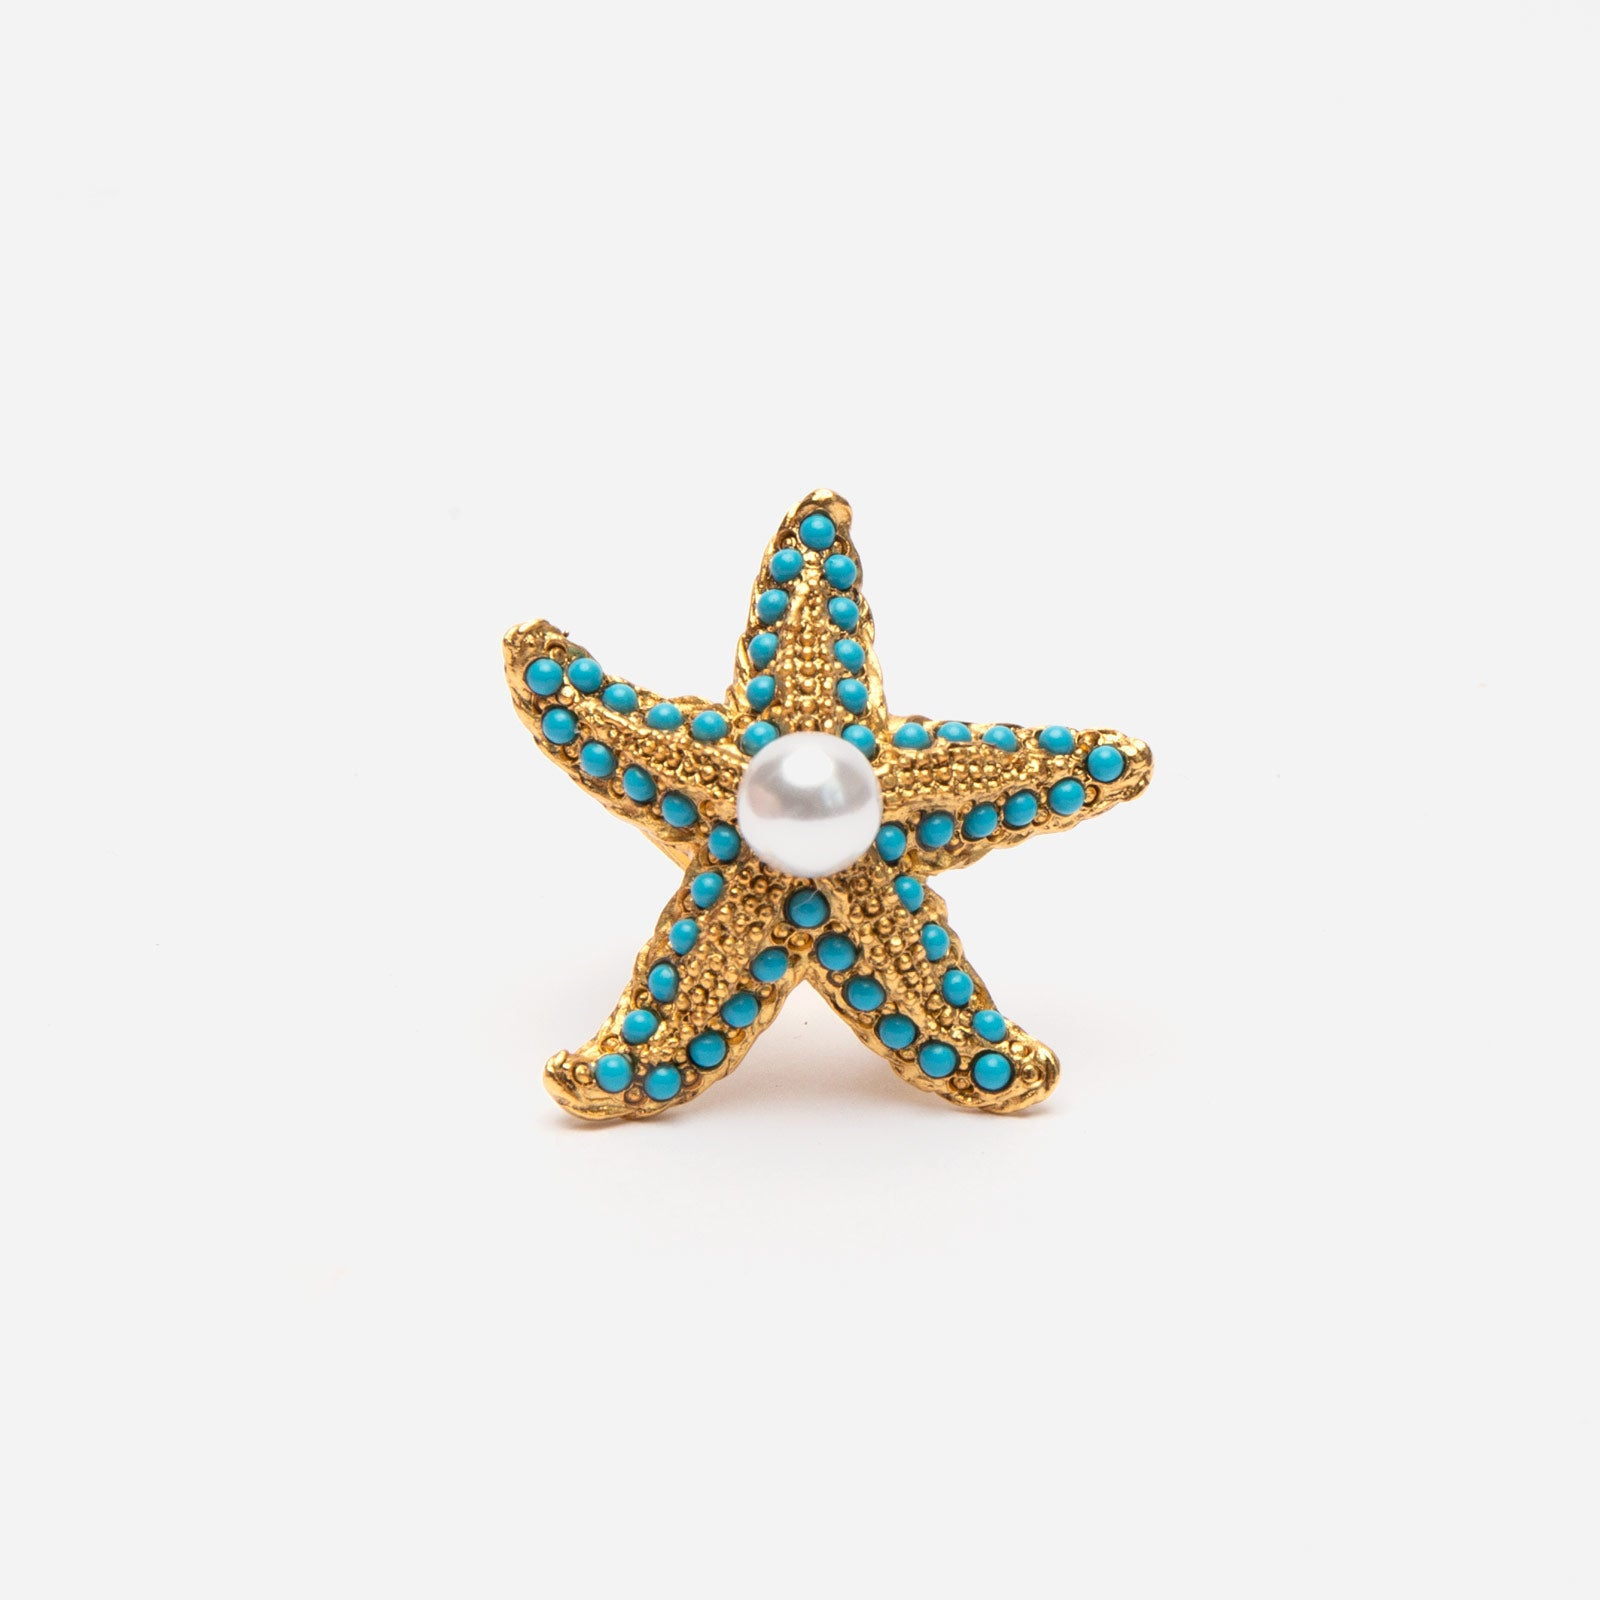 Turquoise Pearl Starfish Ring - Frances Valentine